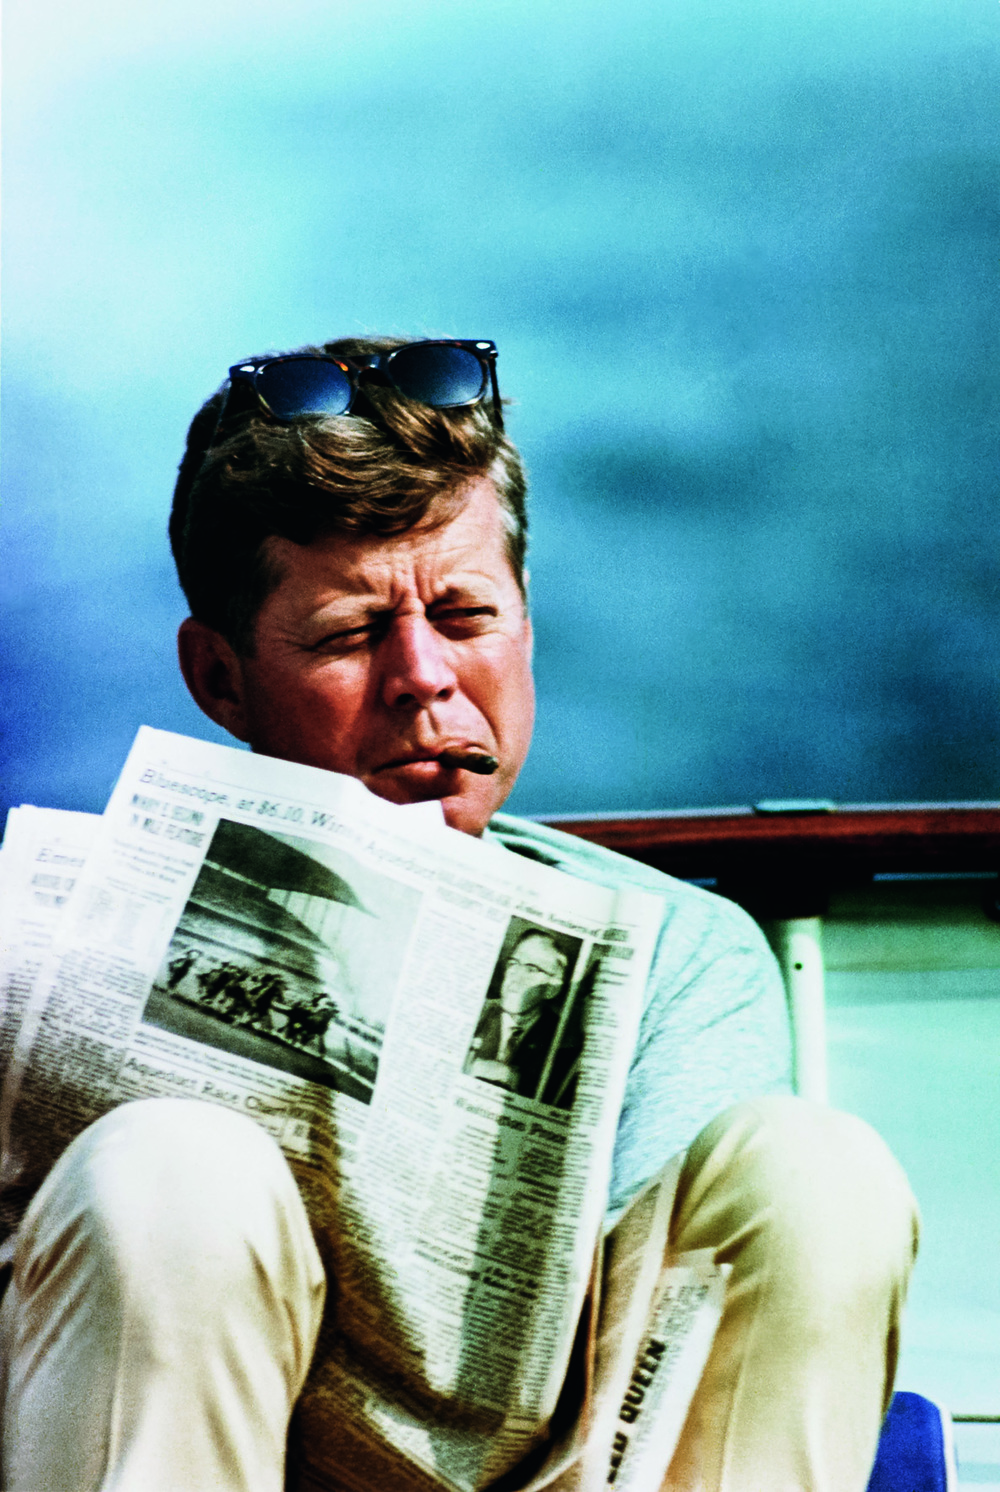 © The Stylish Life - Yachting, published by teNeues, www.teneues.com. John F. Kennedy with Newspaper and Cigar, Photo © CORBIS.